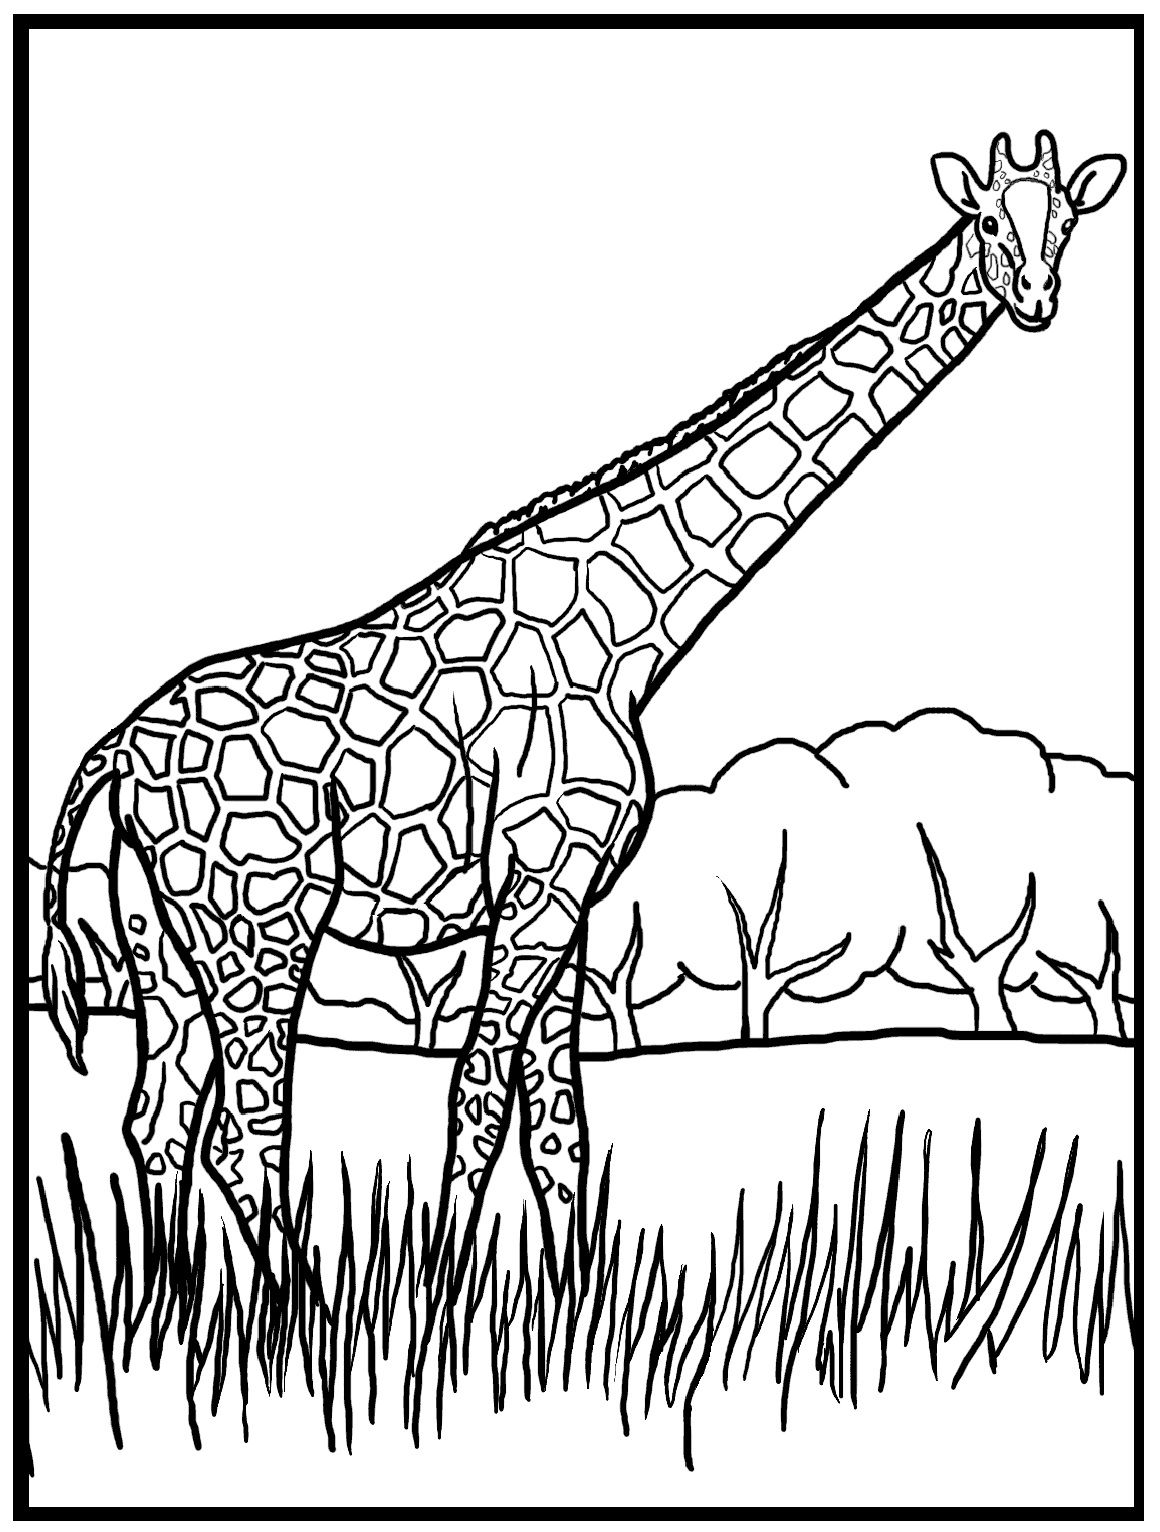 Free Printable Giraffe Coloring Pages For Kids | COLORING PAGES ...